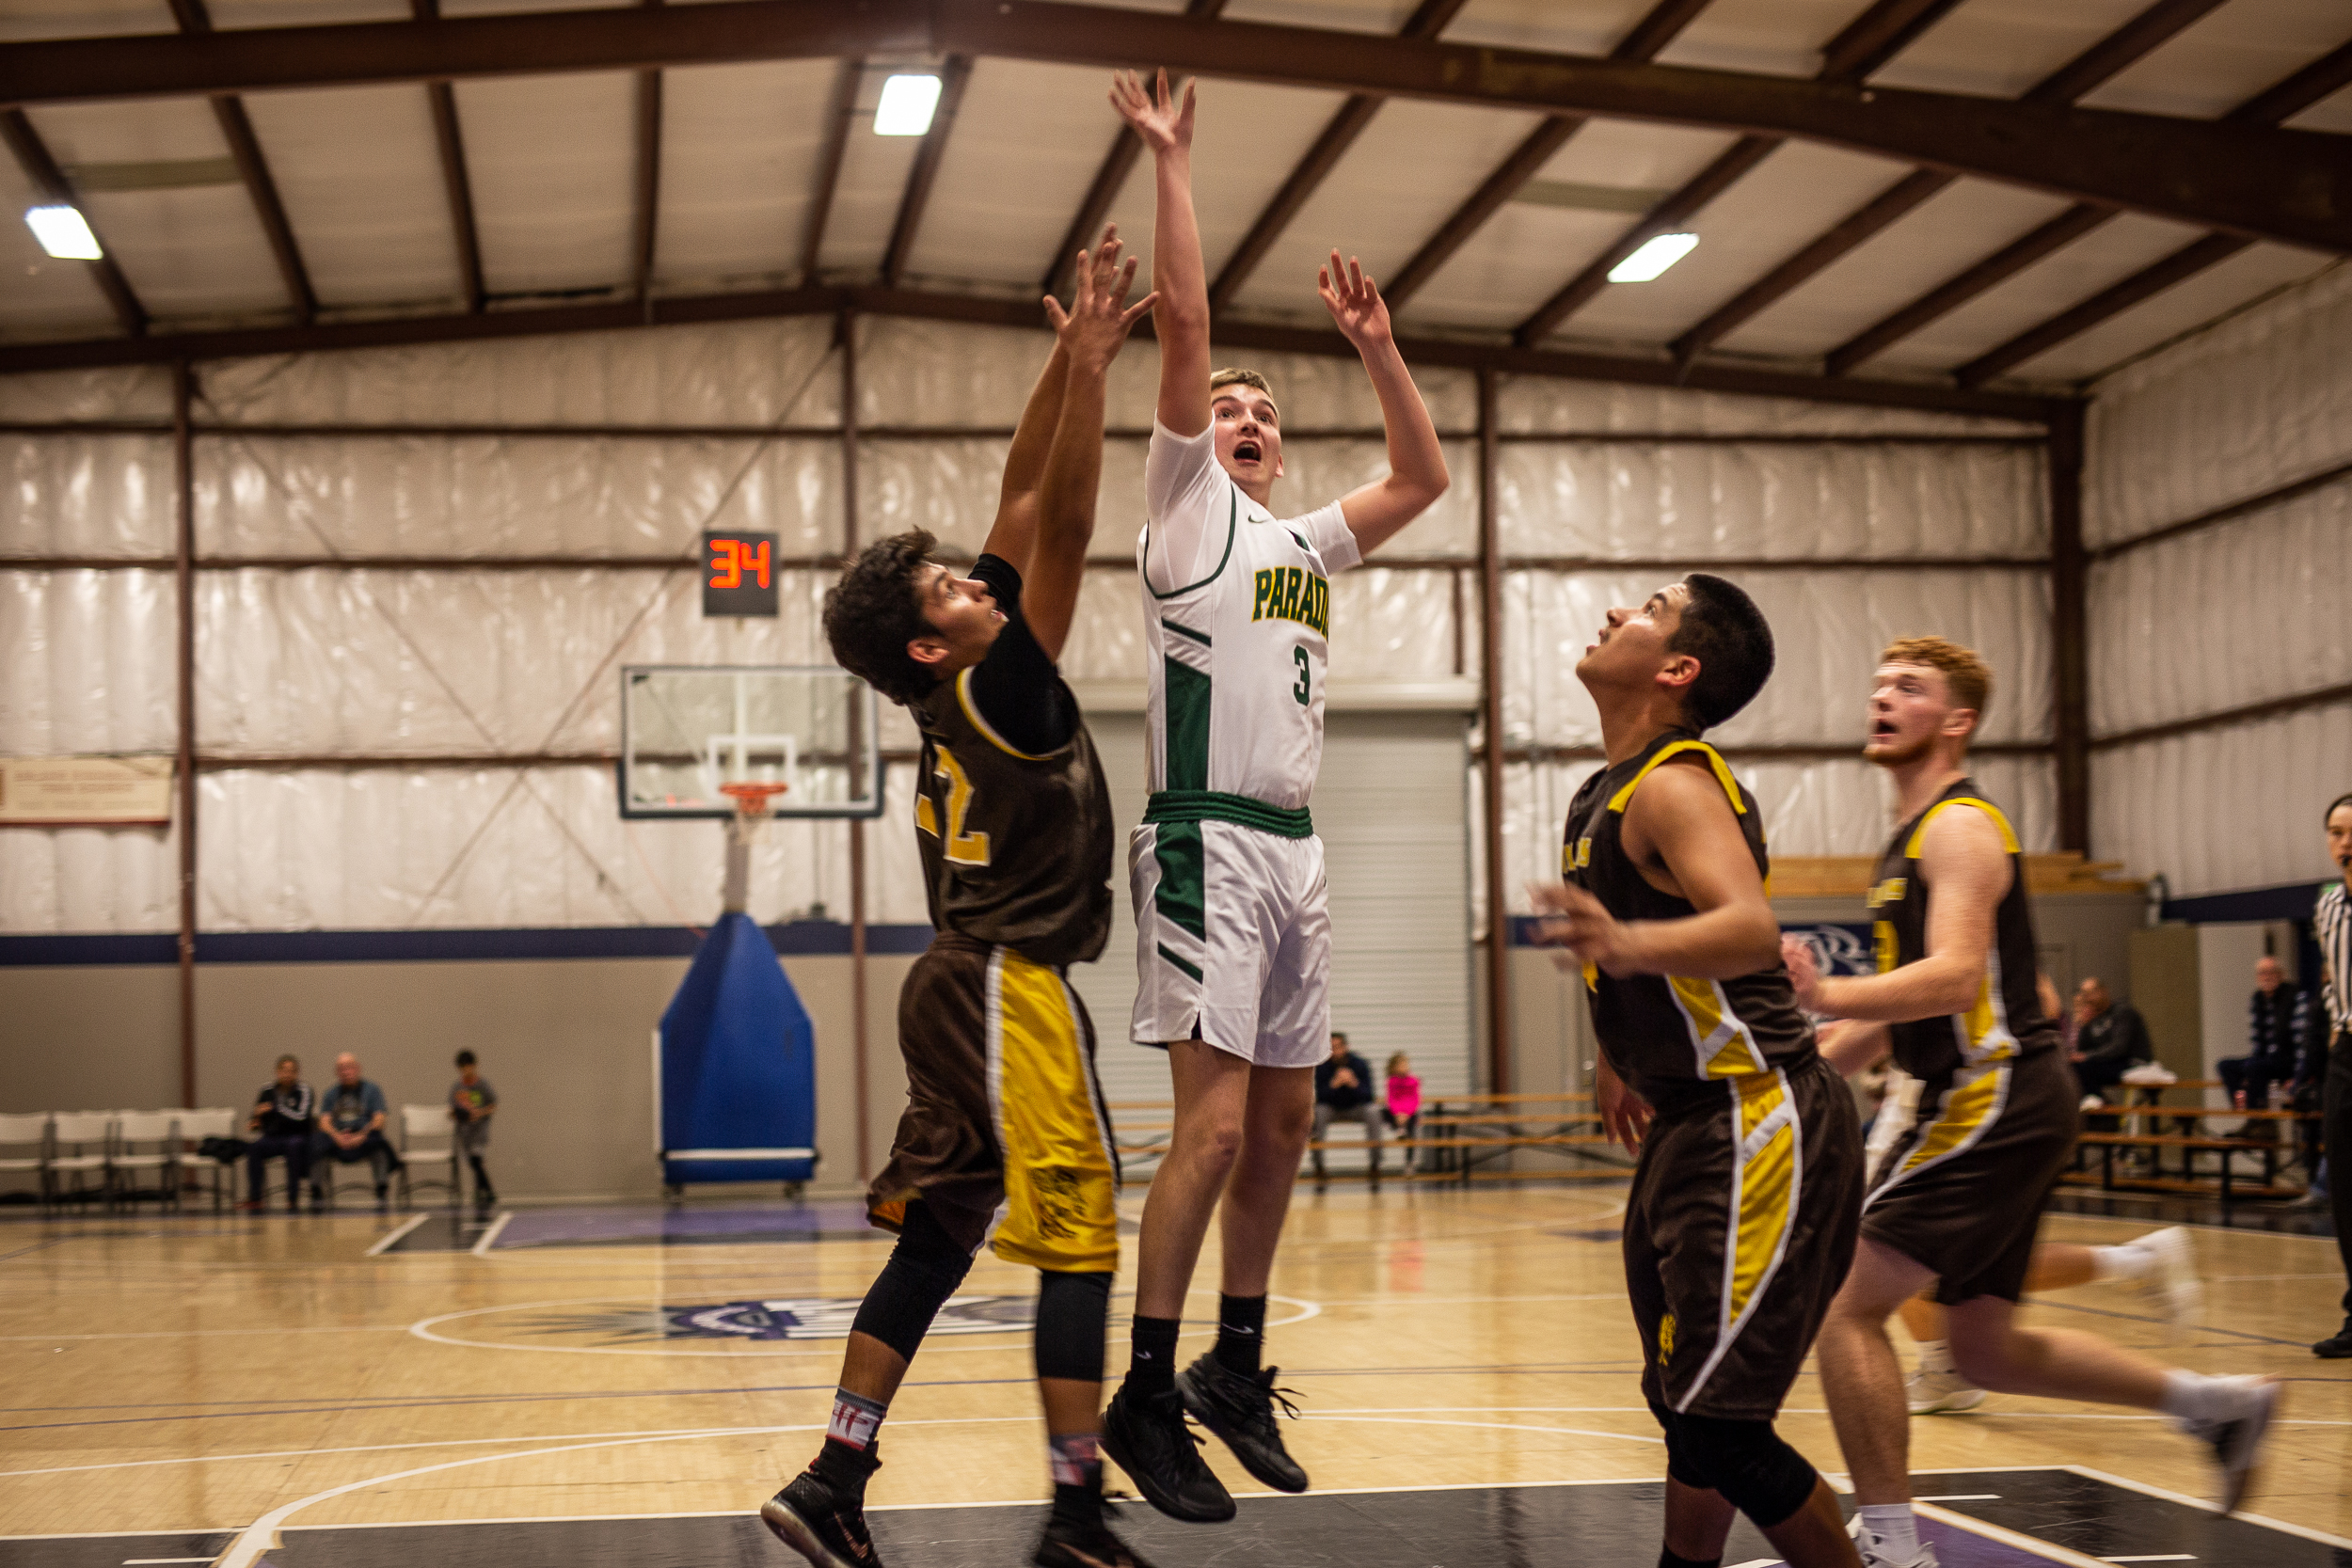 California-town-finds-hope-in-high-school-basketball-team